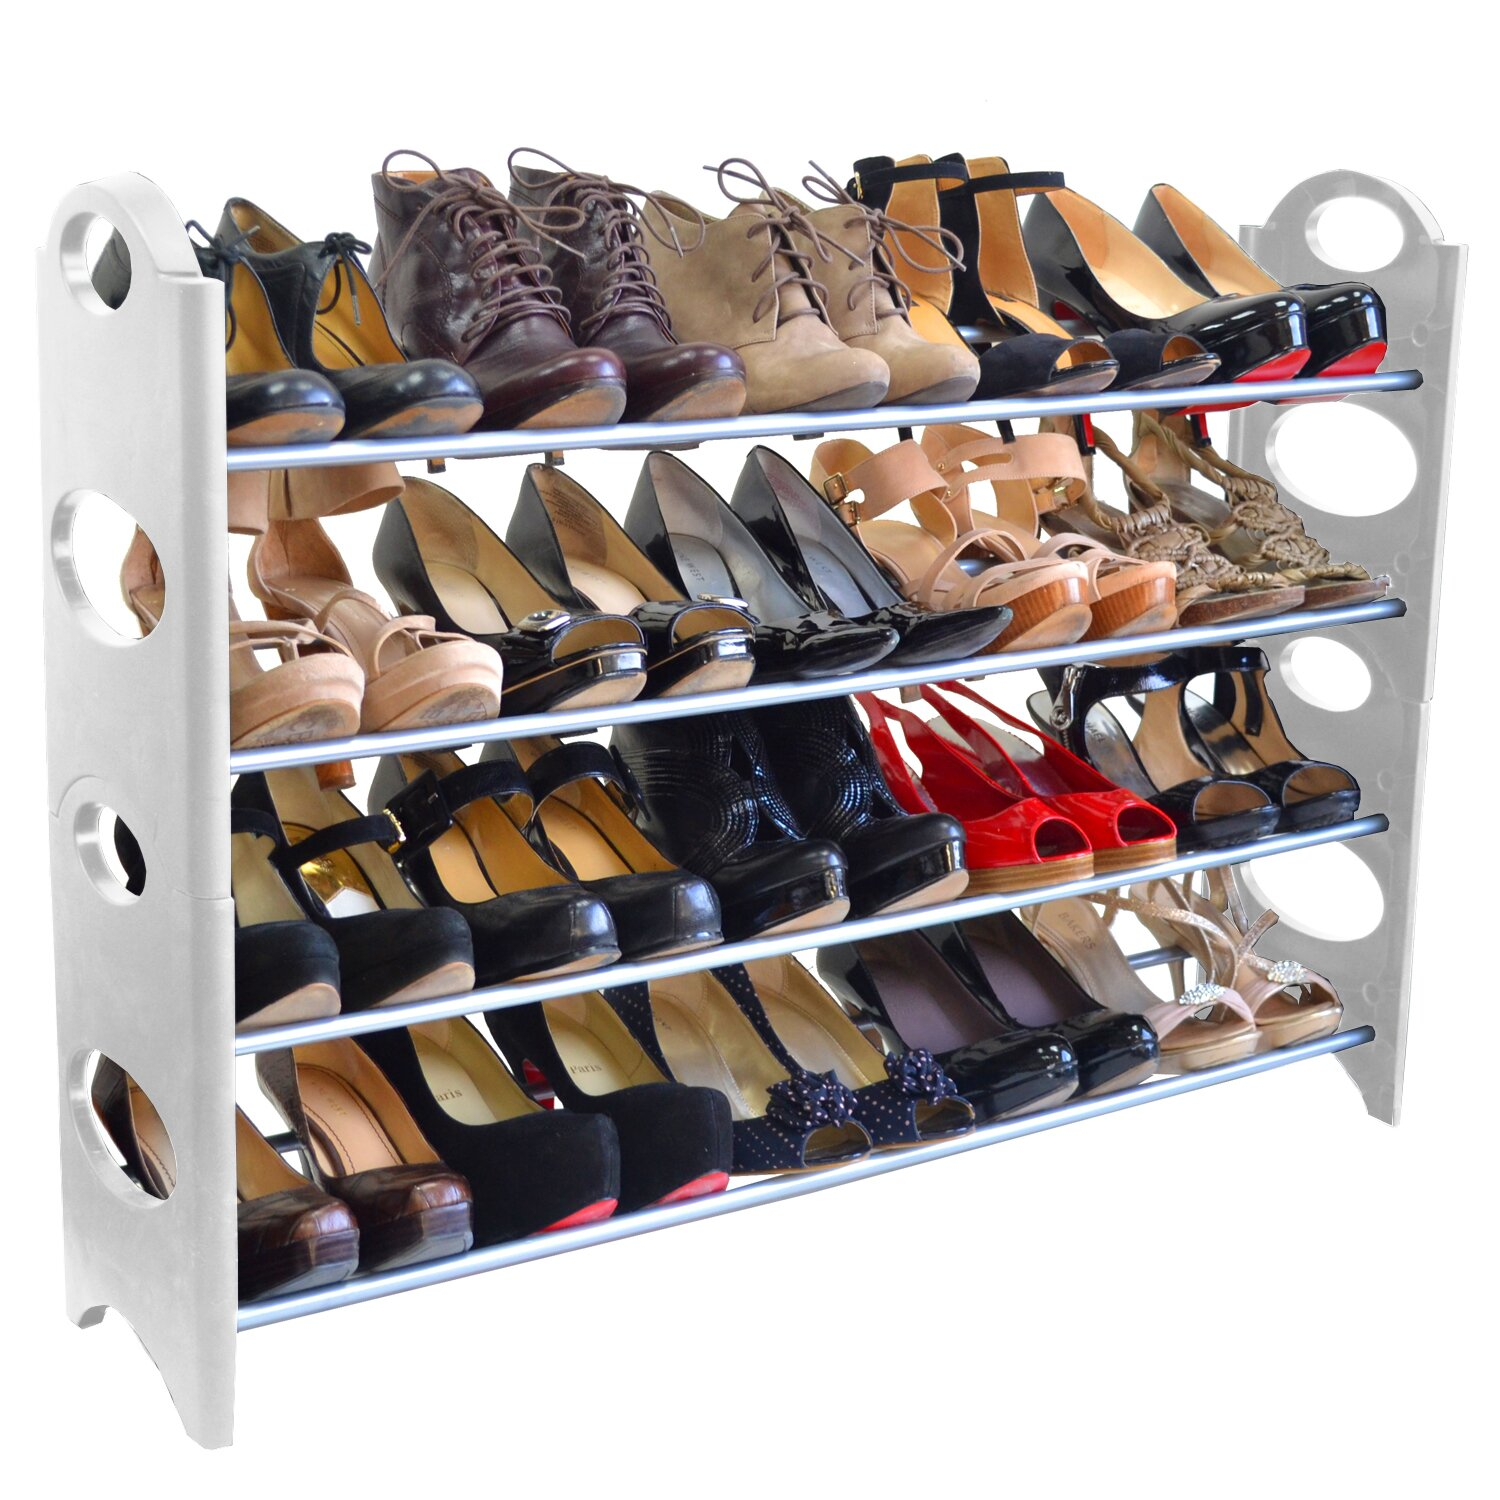 Linen Depot Direct 4-Tier Shoe Rack & Reviews | Wayfair